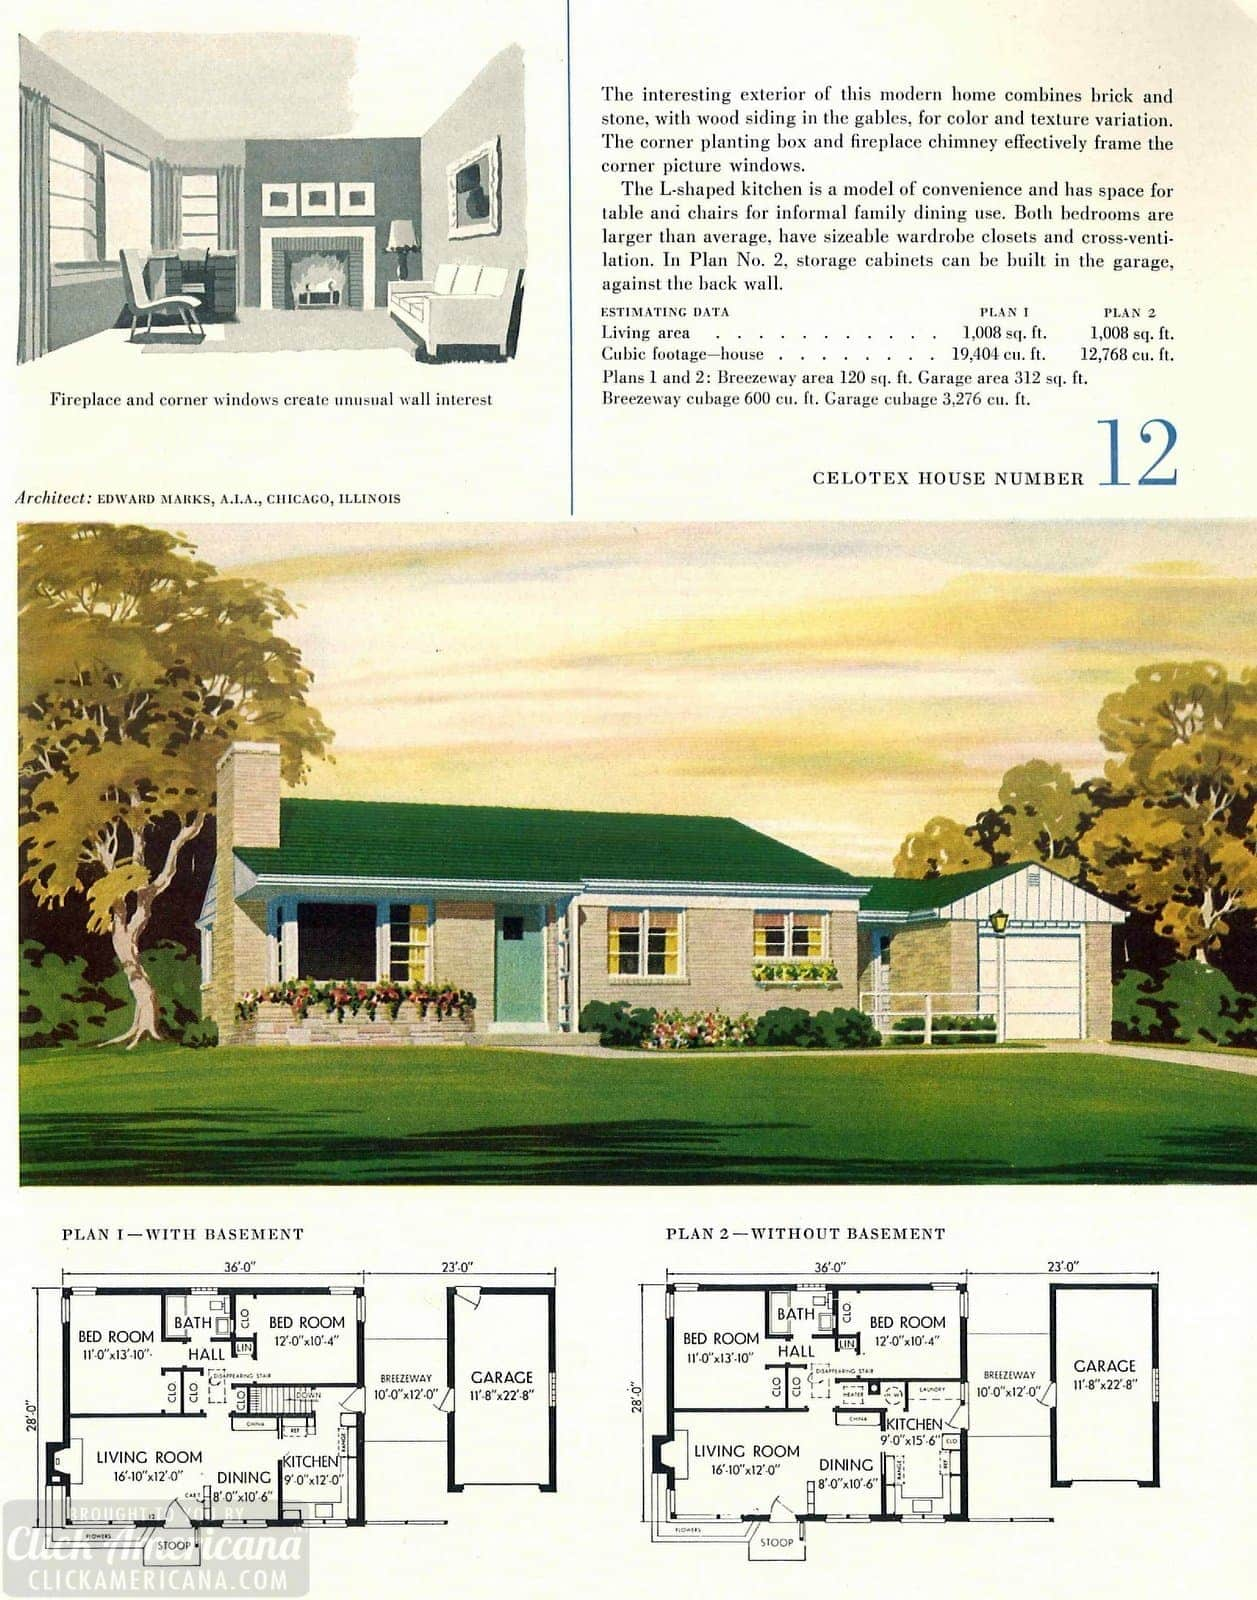 Original vintage house designs for homes built in 1952 - at Click Americana (5)